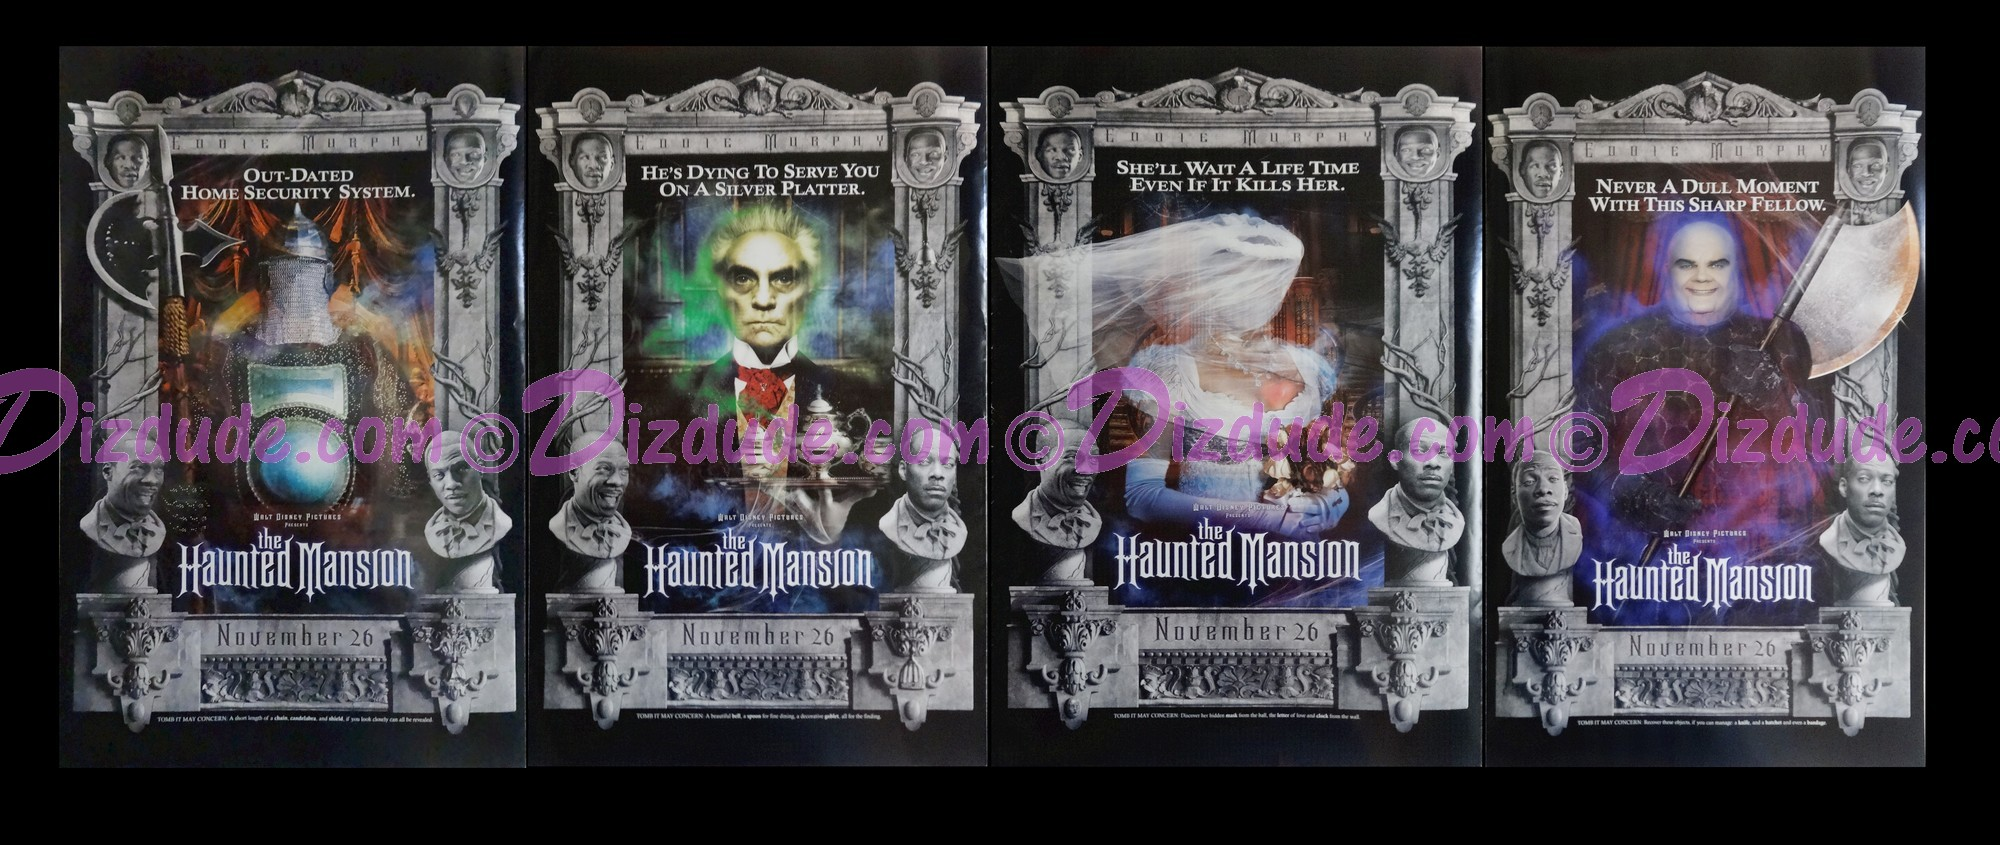 "Disney Movie Poster ""The Haunted Mansion"" From 2003"